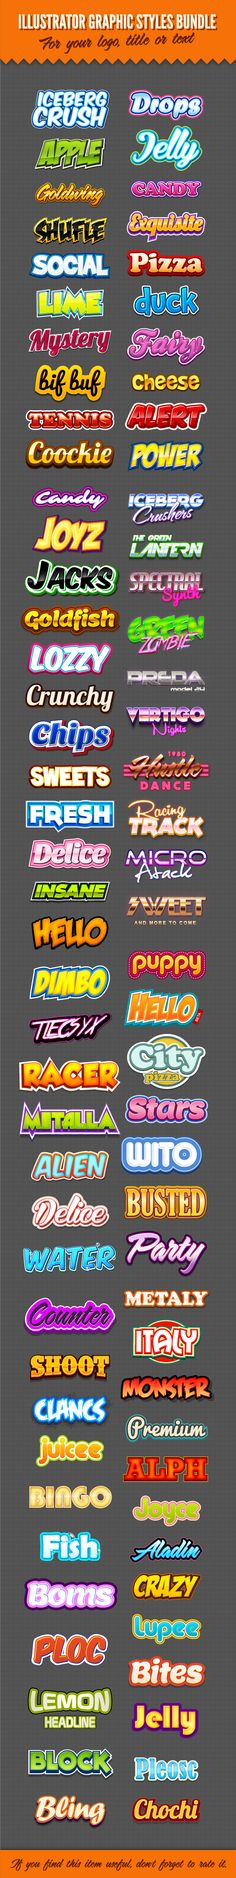 Illustrator Logo Graphic Styles Bundle 1 - Styles Illustrator